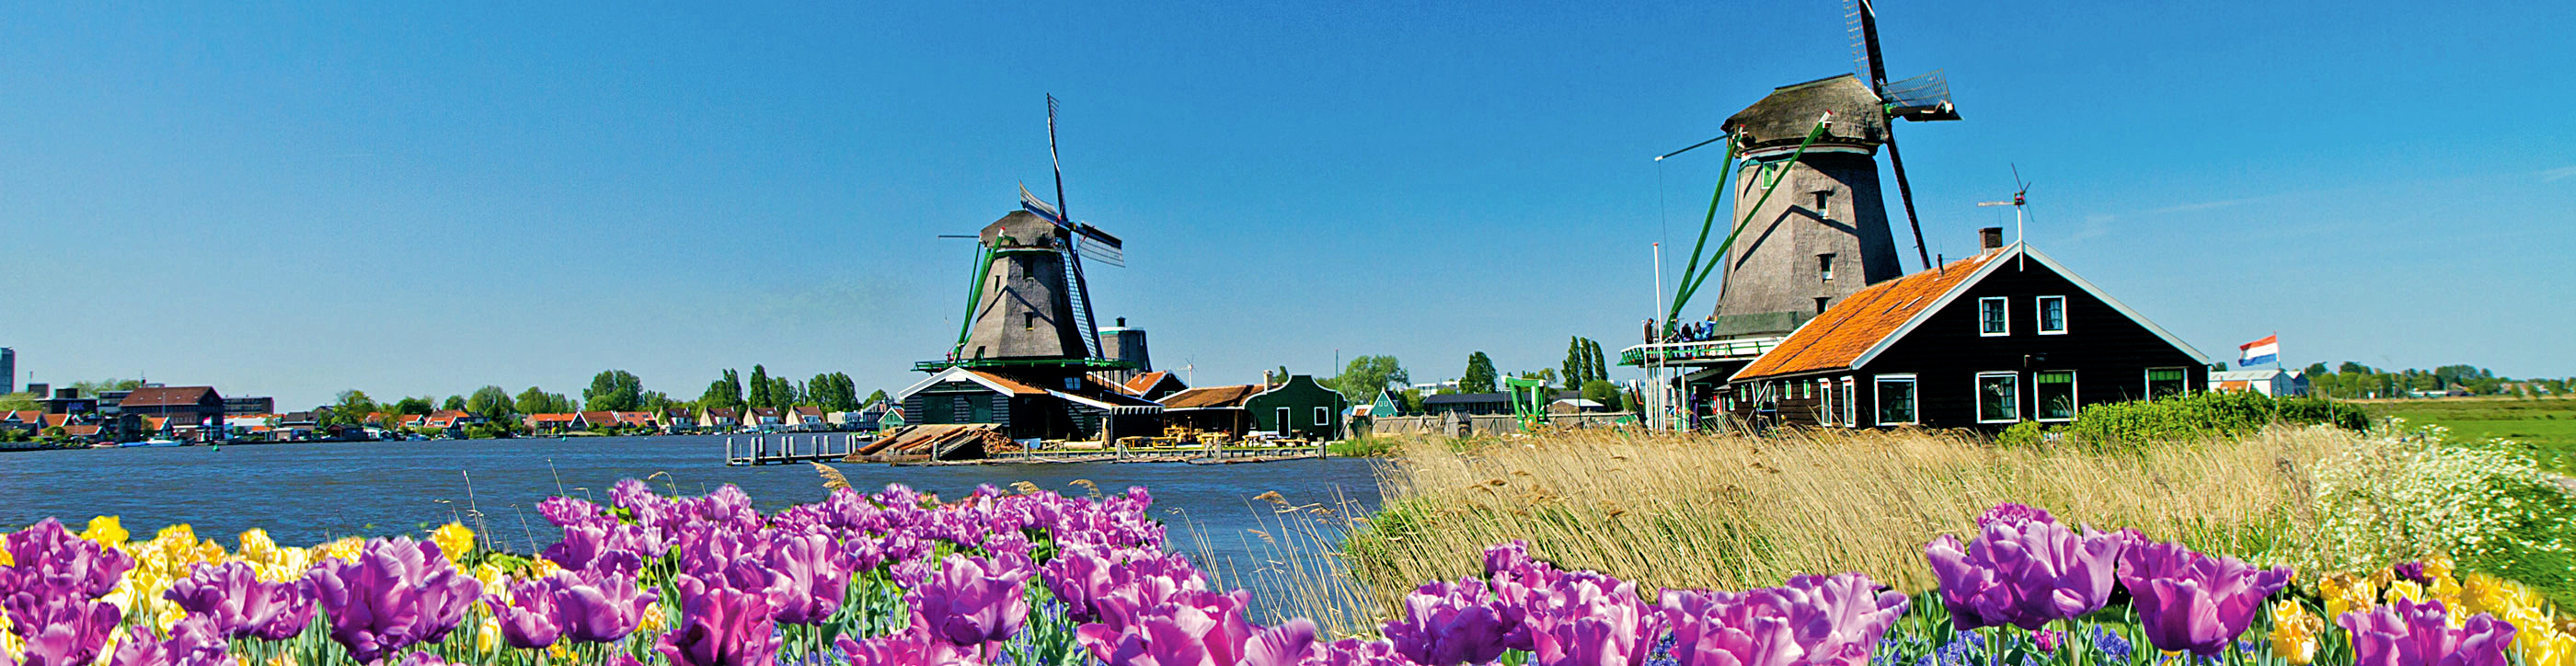 Photograph of Tulips & Windmills